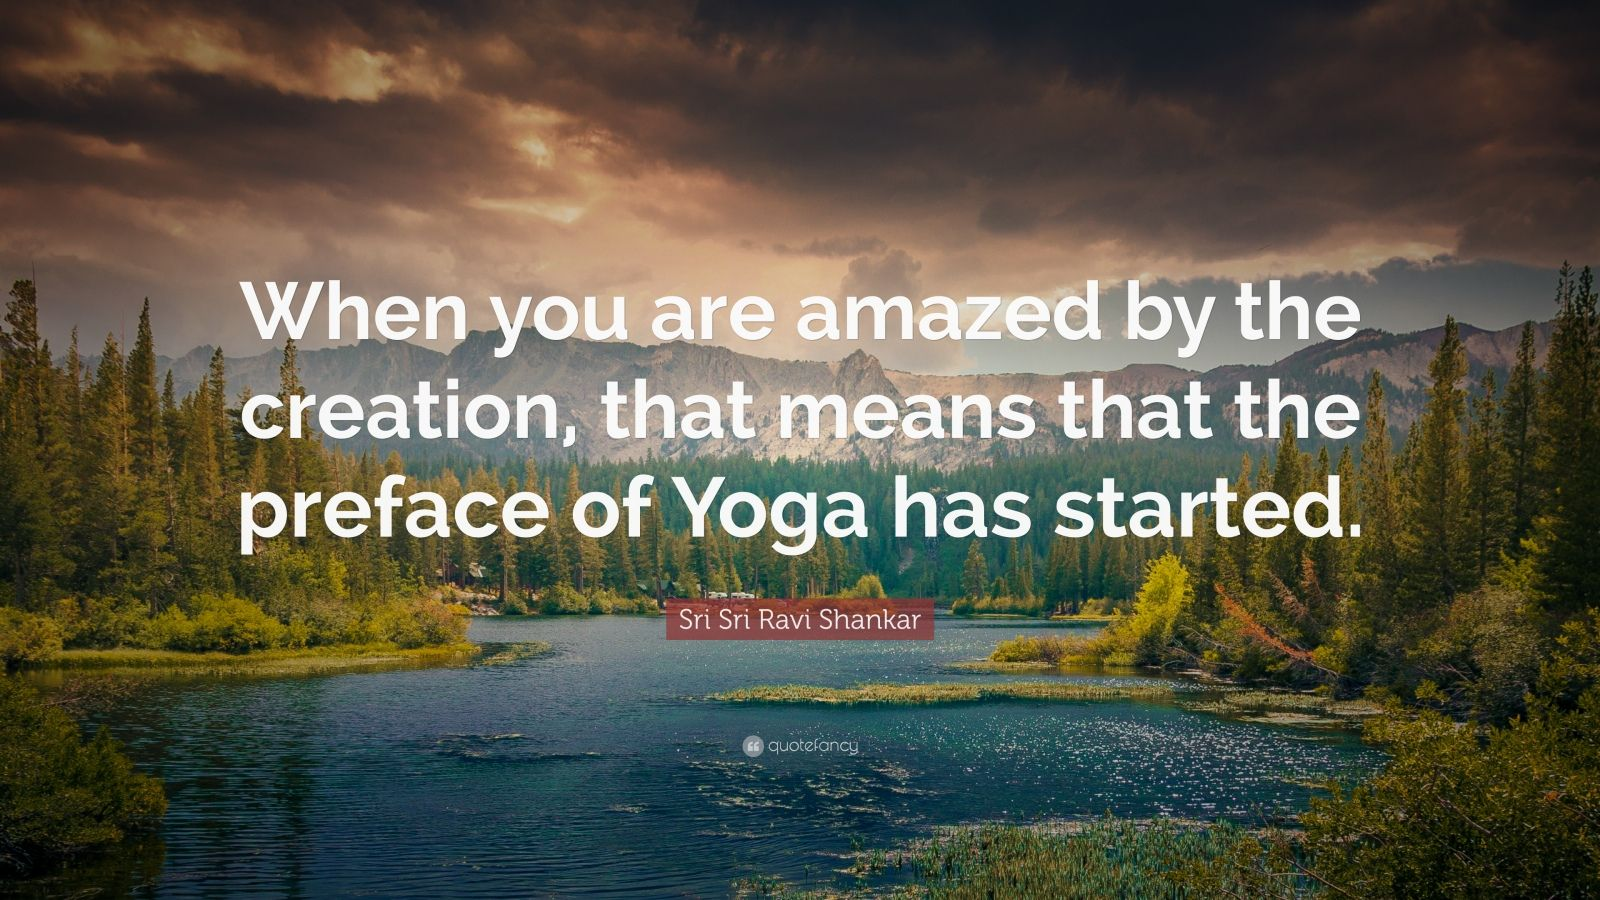 """Sri Sri Ravi Shankar Quote: """"When you are amazed by the creation, that means that the preface of Yoga has started."""""""